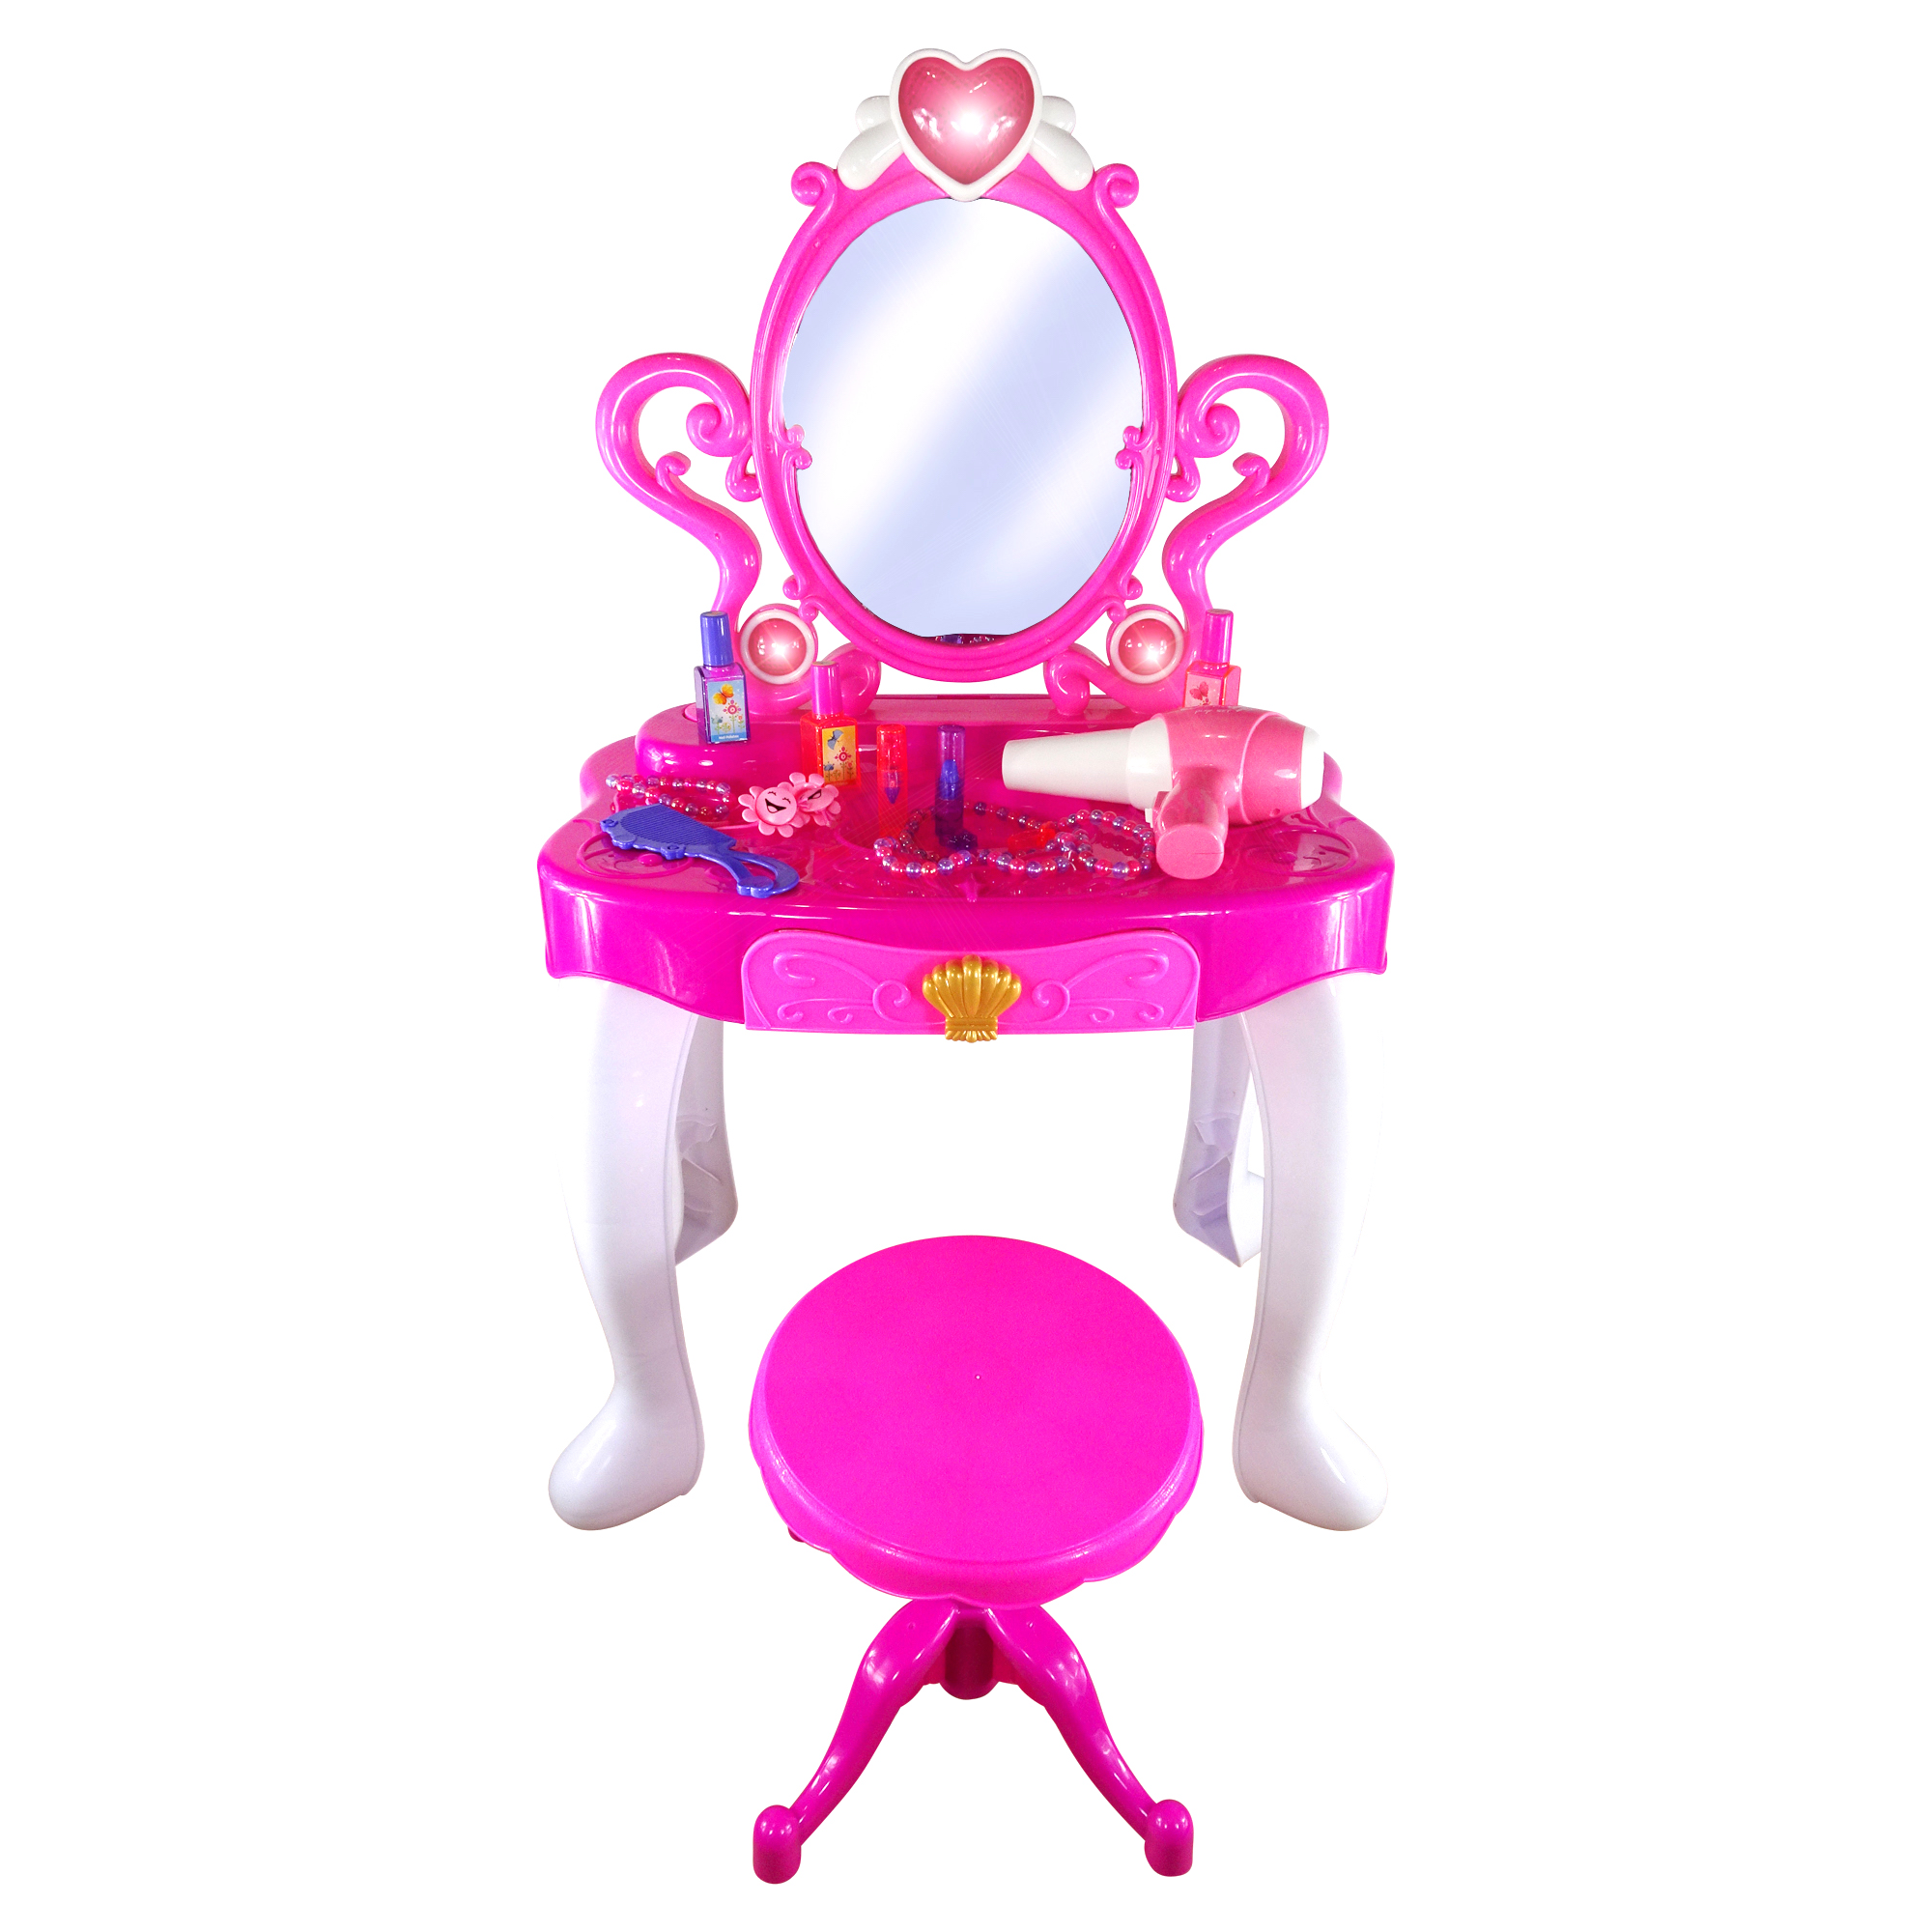 Toy Vanity Table Play Set Little Girls Dream Beauty Mirror Play Set